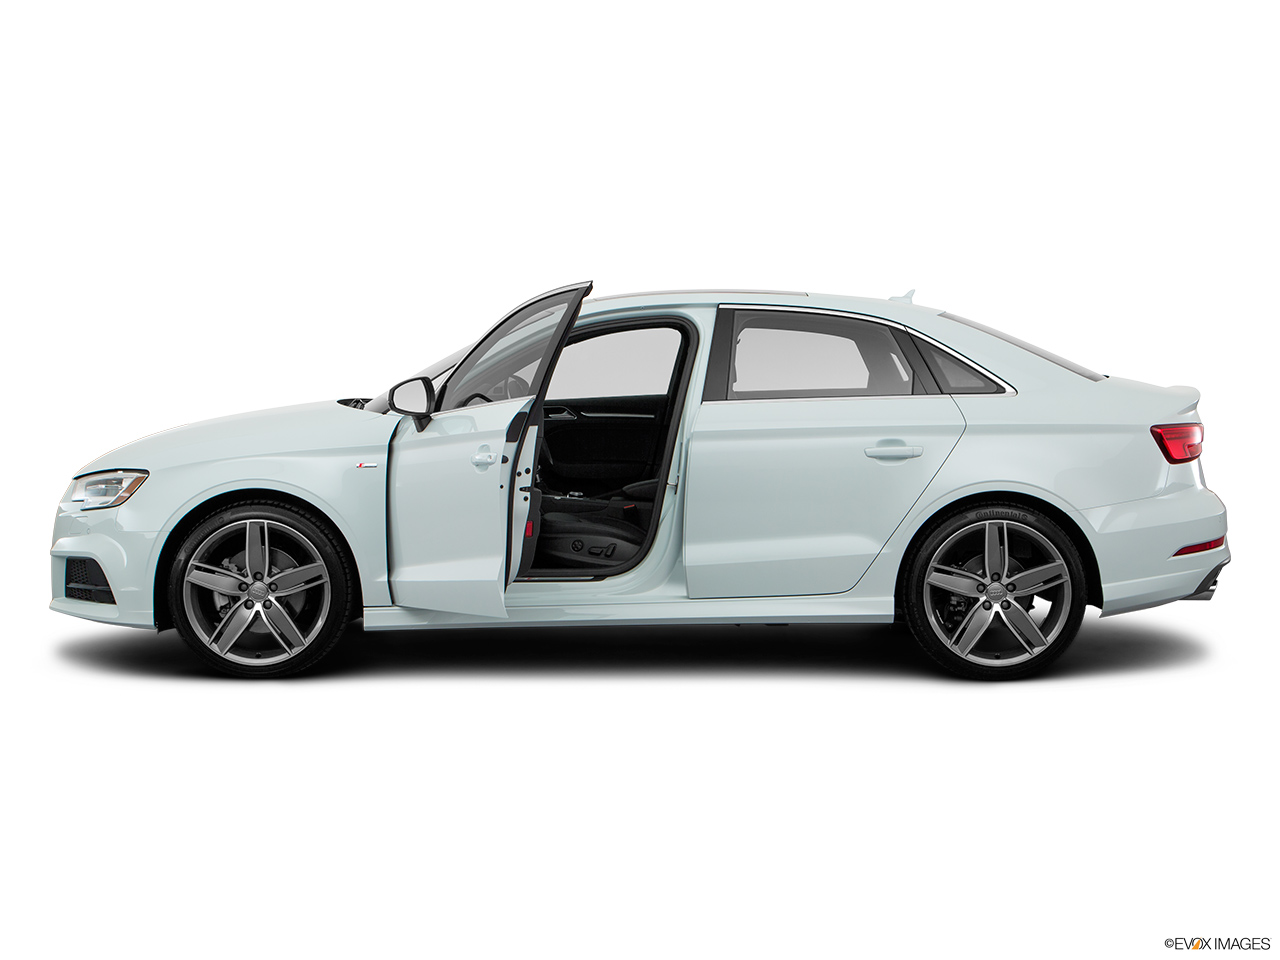 audi a3 sedan 2017 sport 40 2 0 tfsi 190 hp in uae new car prices specs reviews photos. Black Bedroom Furniture Sets. Home Design Ideas